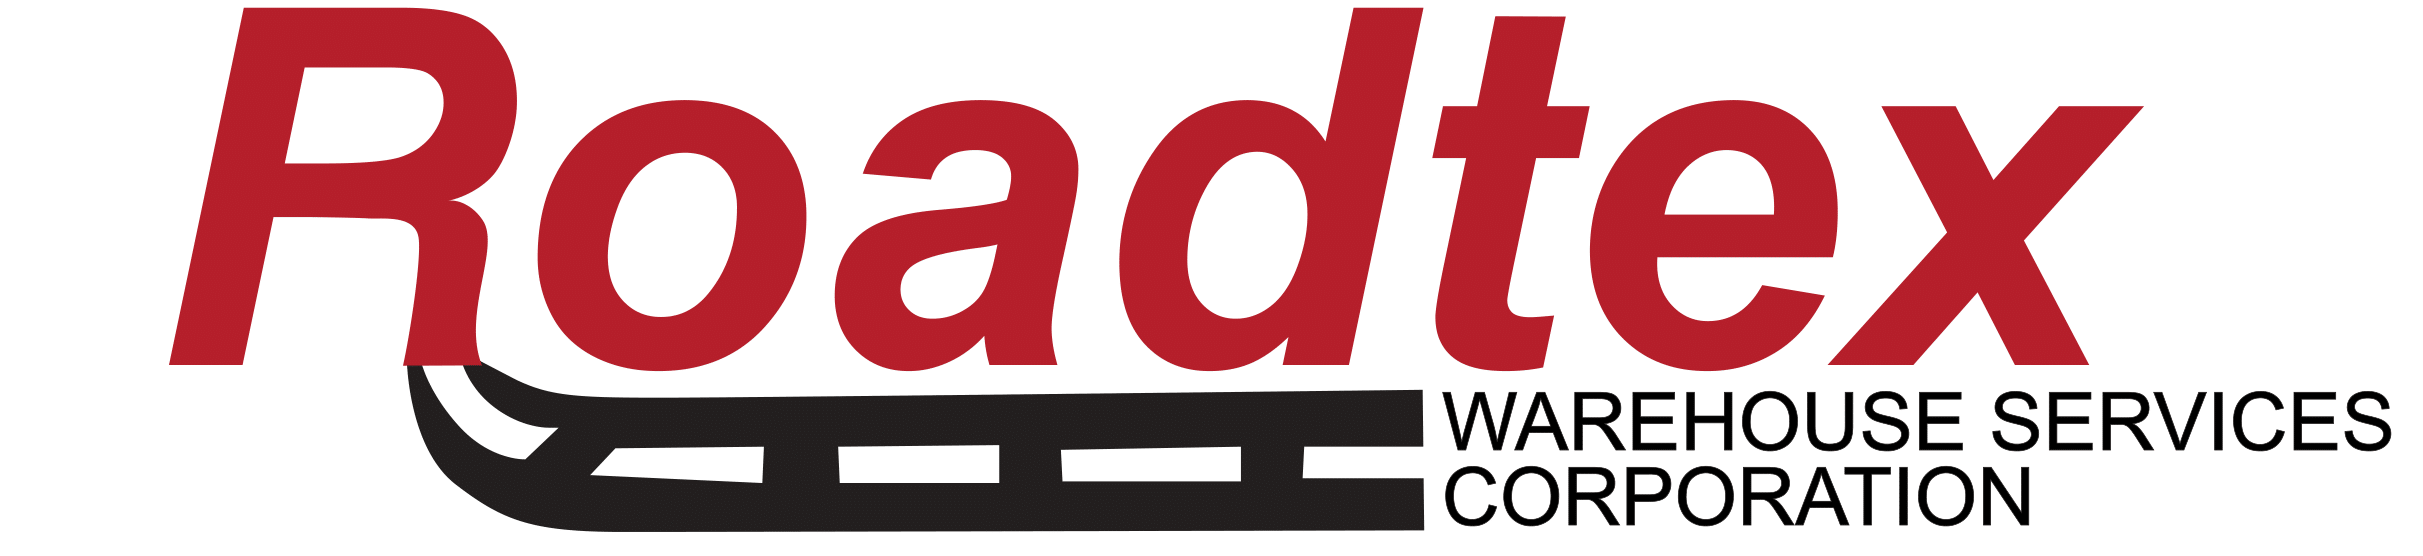 Roadtex Warehouse Services Corporation